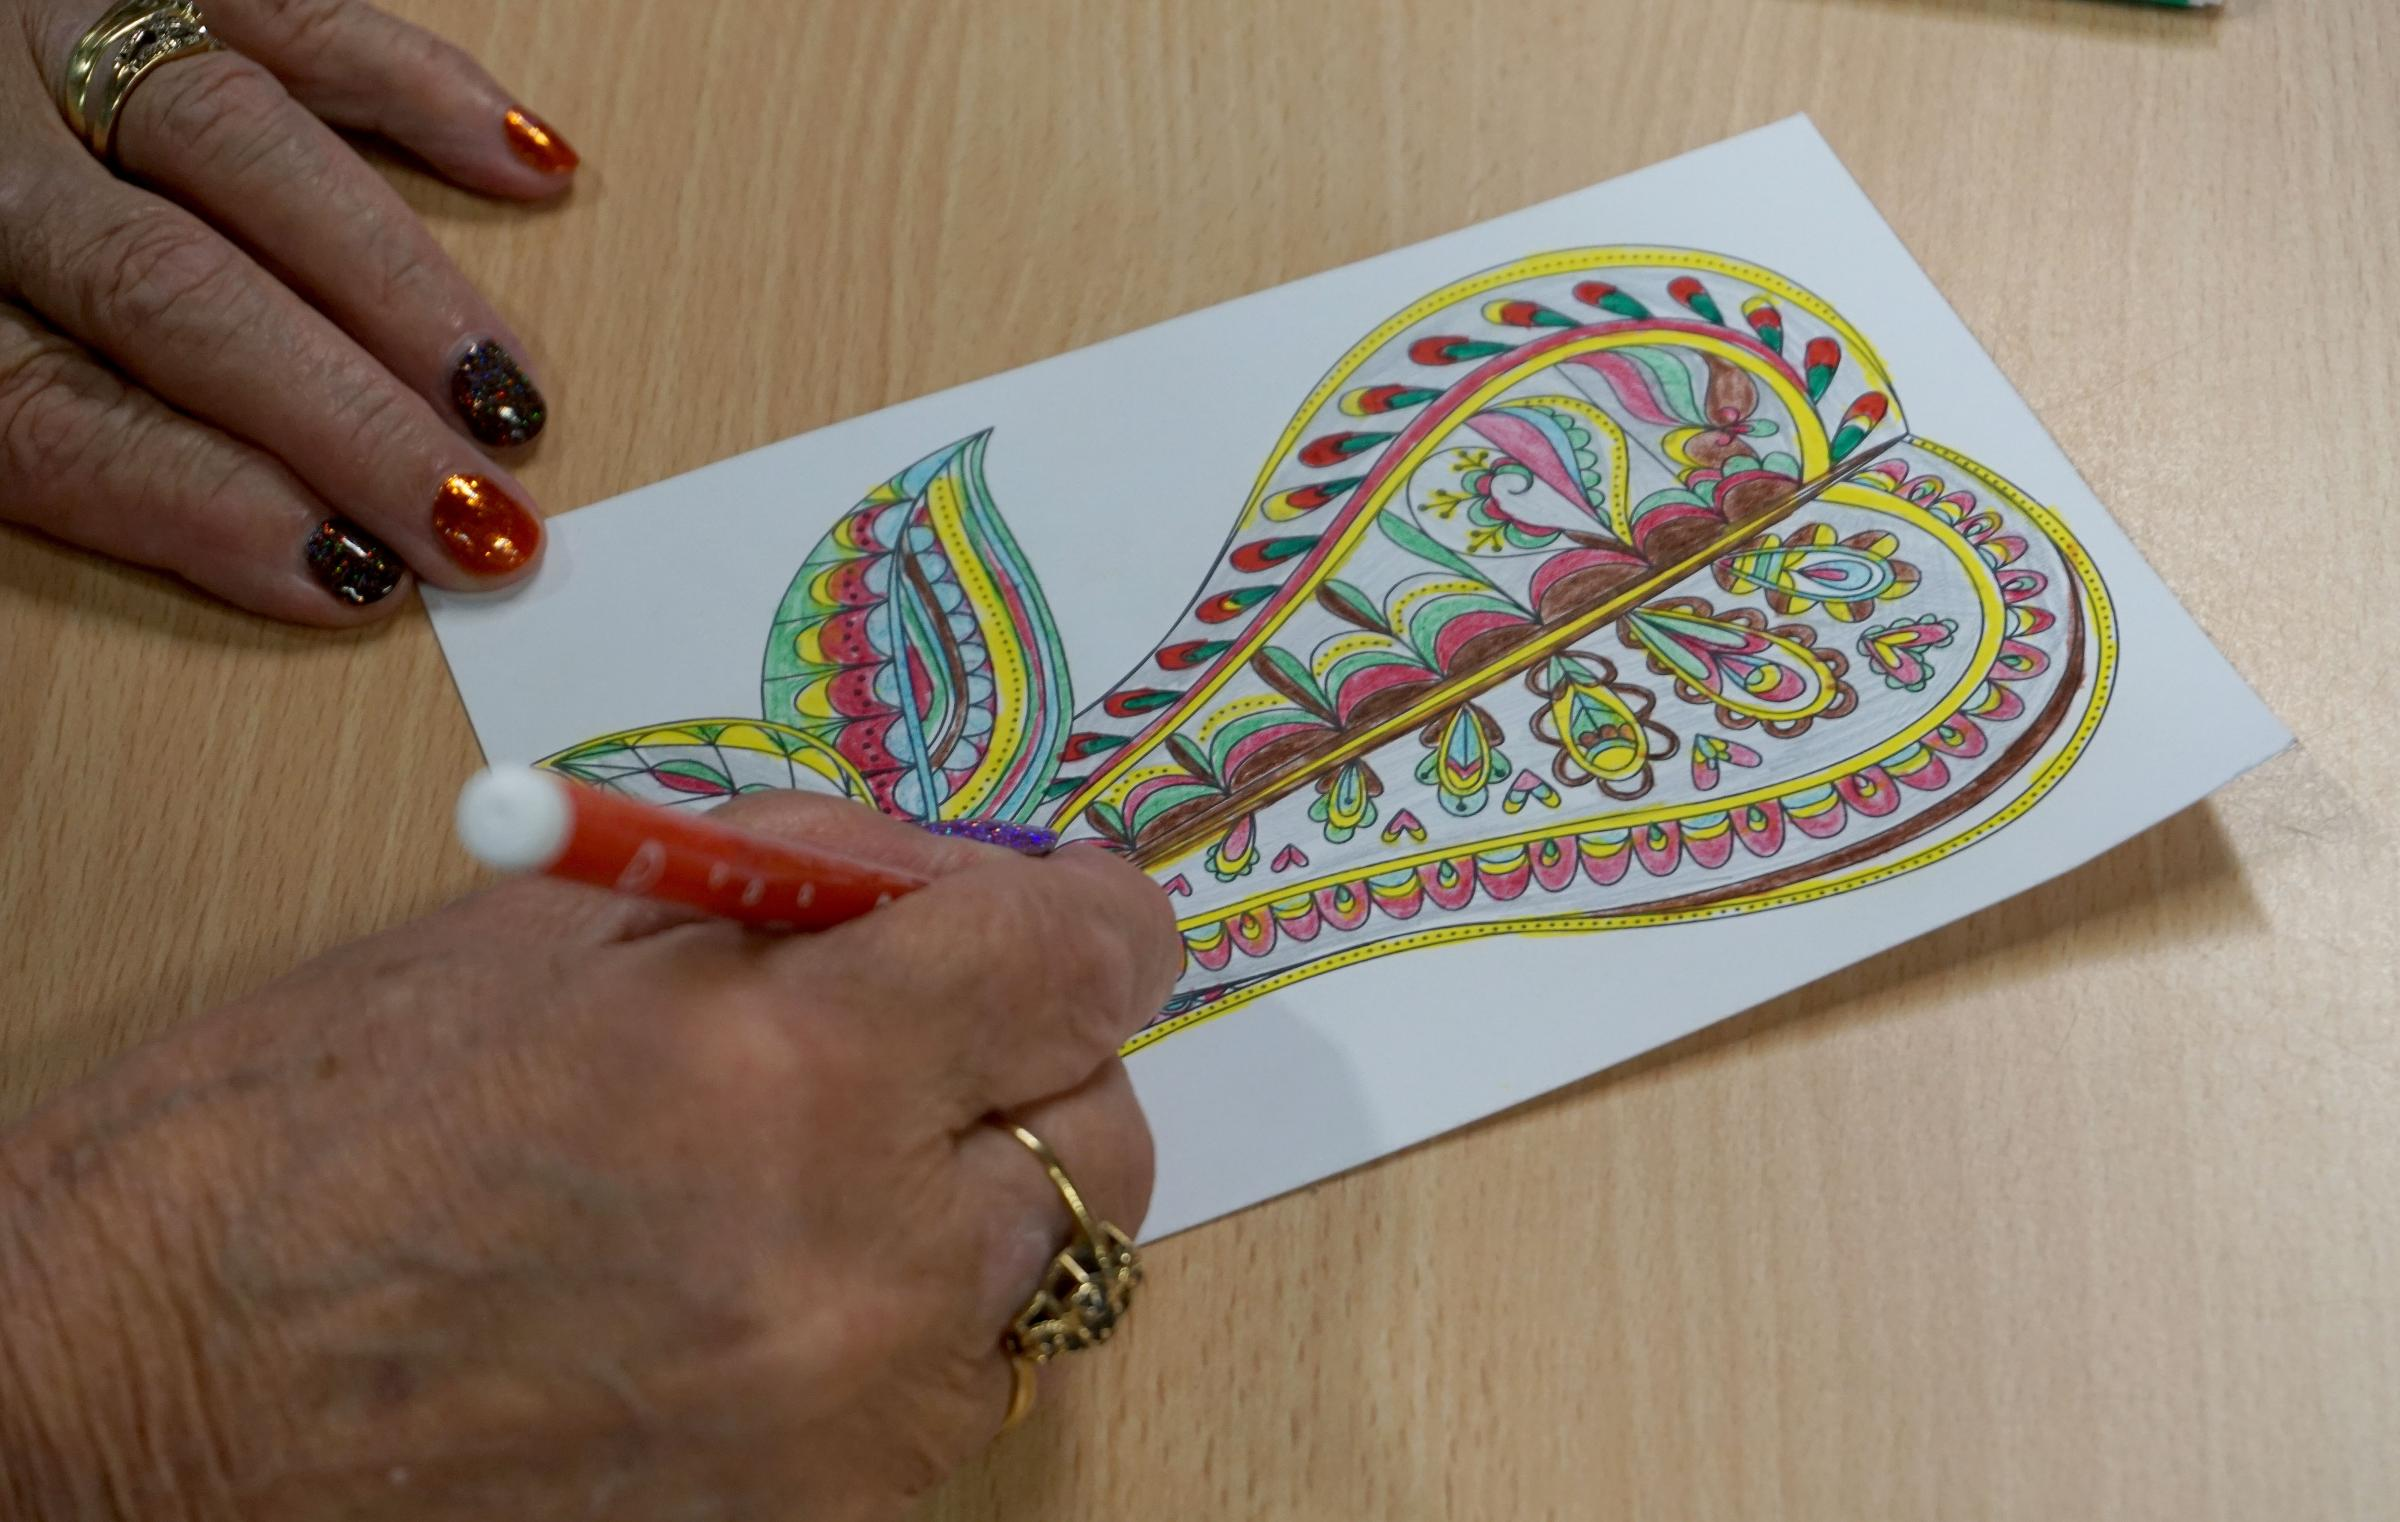 People take part in a colouring-in class at Broadstone Library. ..Pictures - Faith Eckersall - 15/10/15 - Catchline - Rfe151015Colouring.